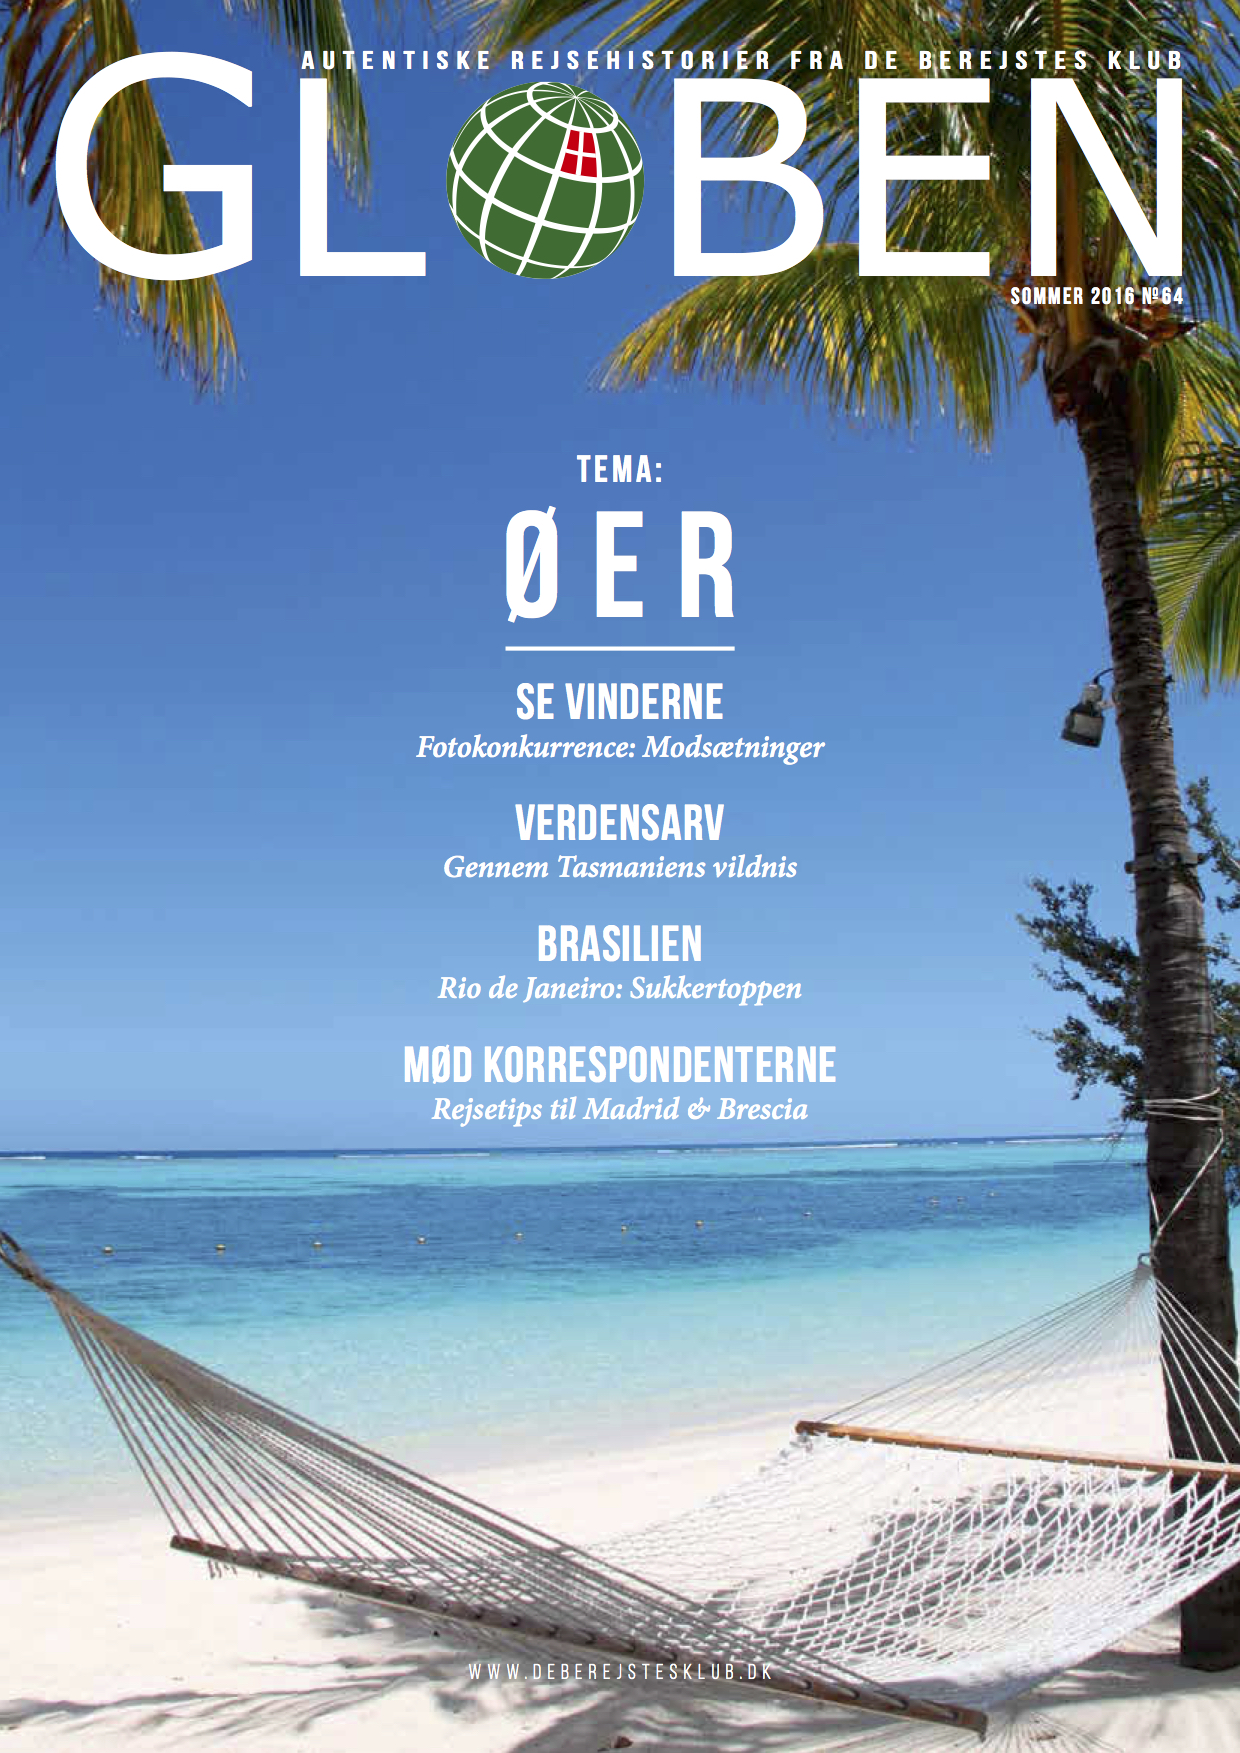 """Issue 64: Øer   The theme for this issue is travel stories on the islands across the world. Also, the winners of photo competition titled """"Contrasts"""" are announced. Download the issue  here ."""